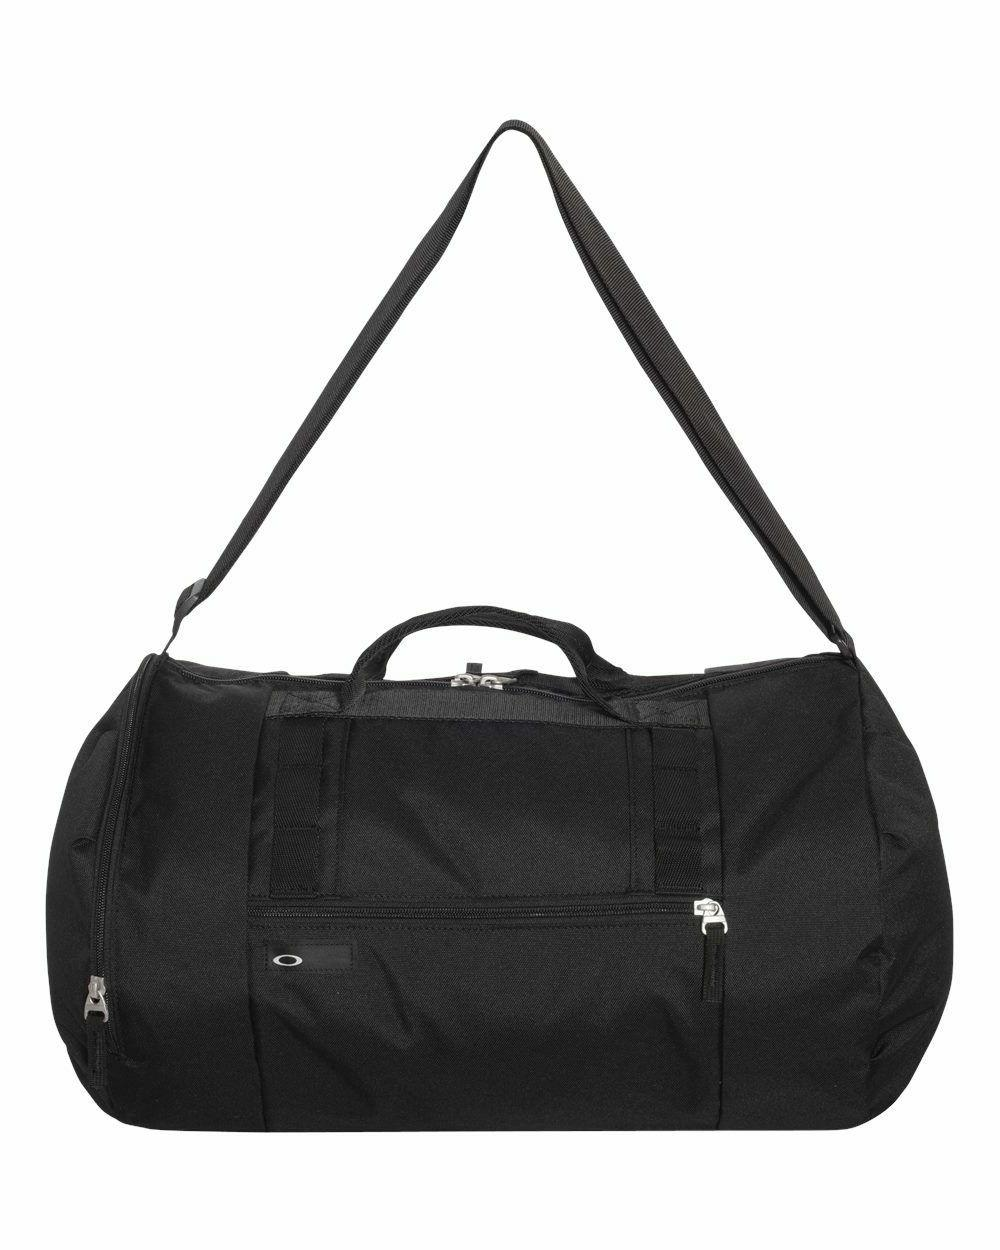 OAKLEY - AUTHENTIC Gear, Holbrook, Bag